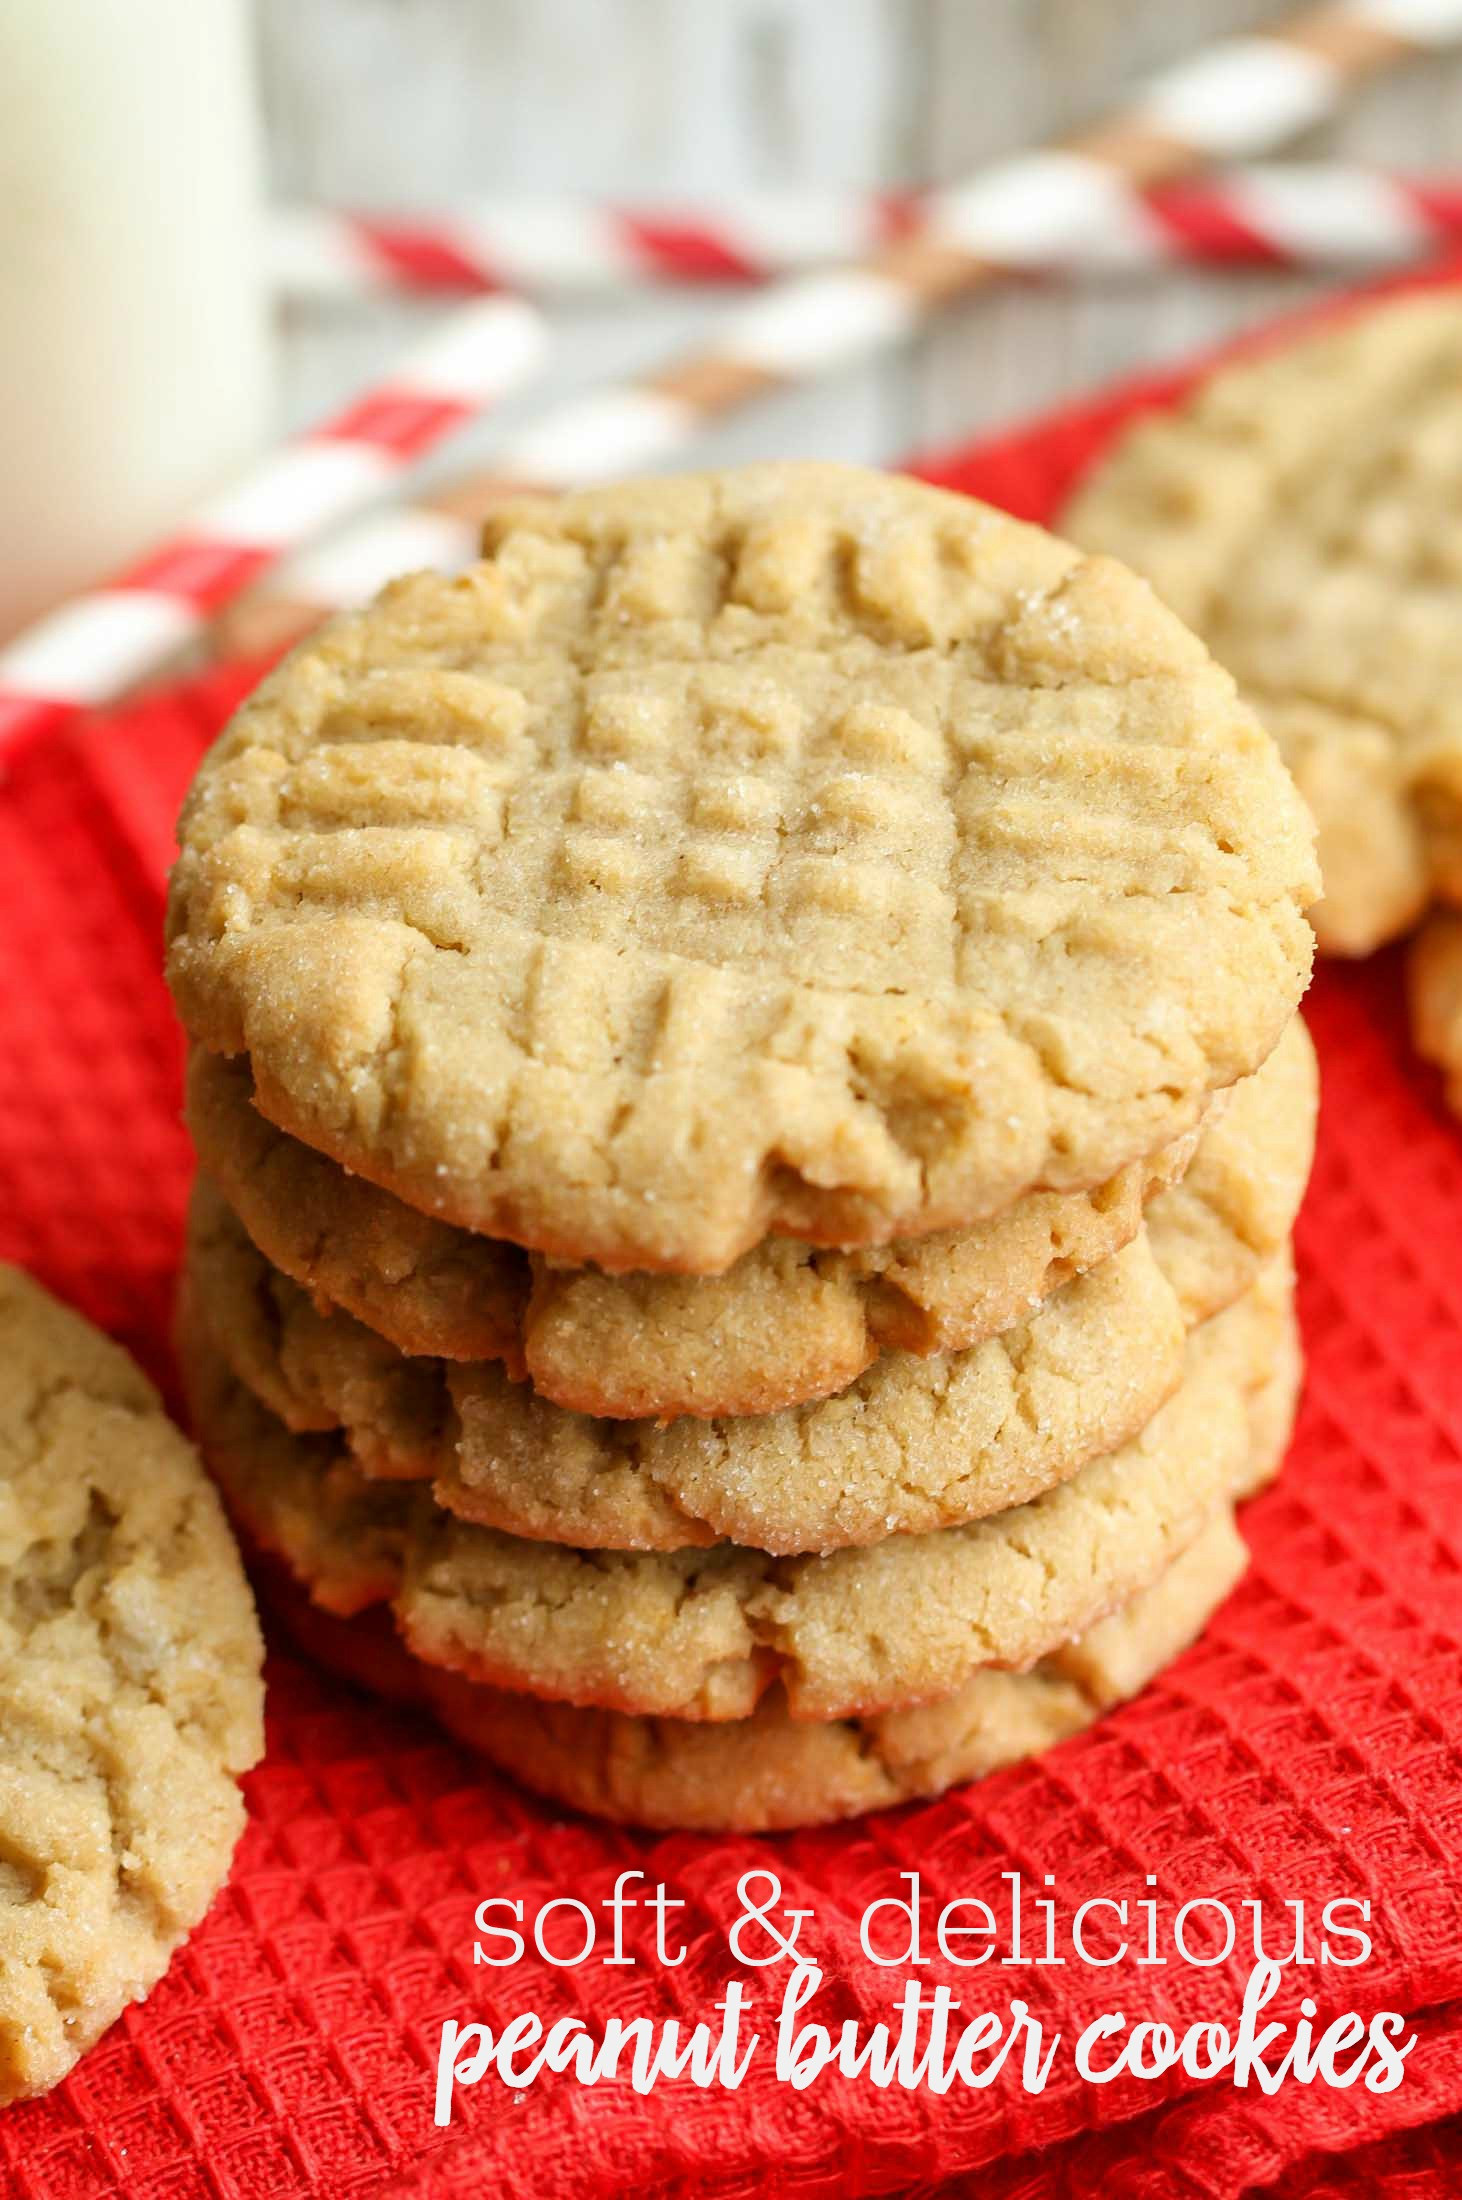 Peanut Butter Cookies Recipes  EASY & SOFT Peanut Butter Cookies